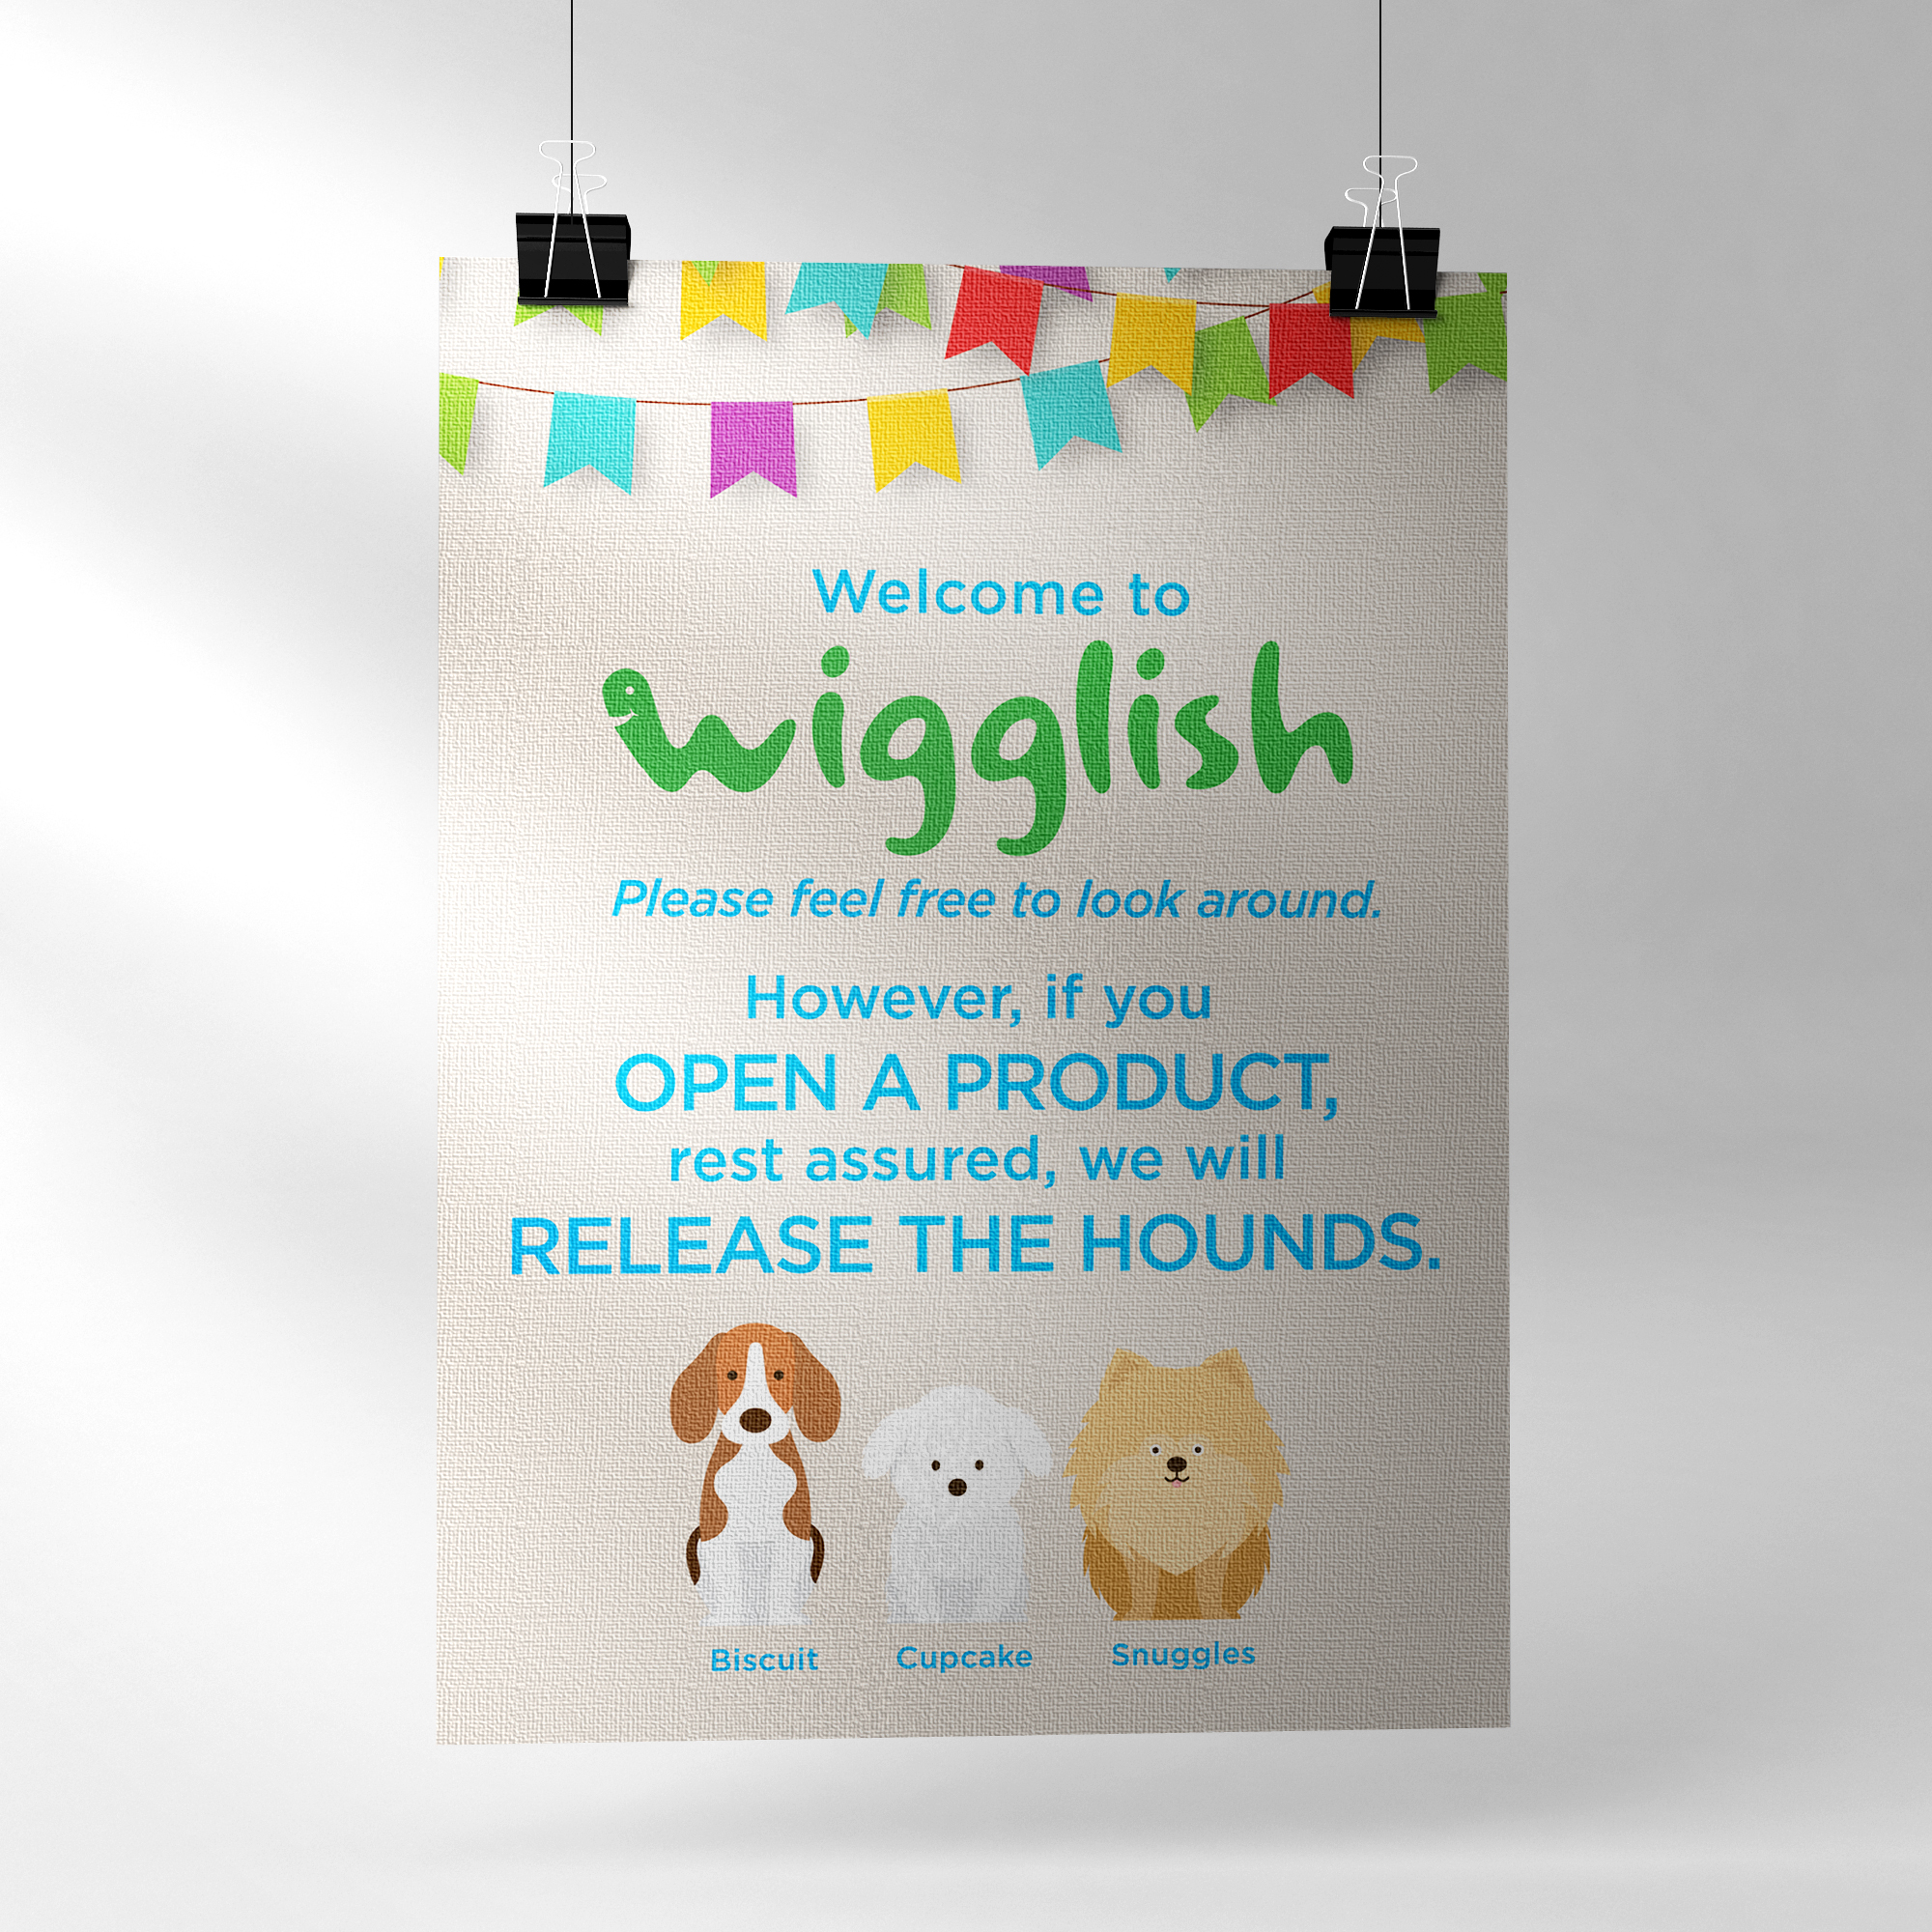 Wigglish Release the hounds single poster mock-up.jpg